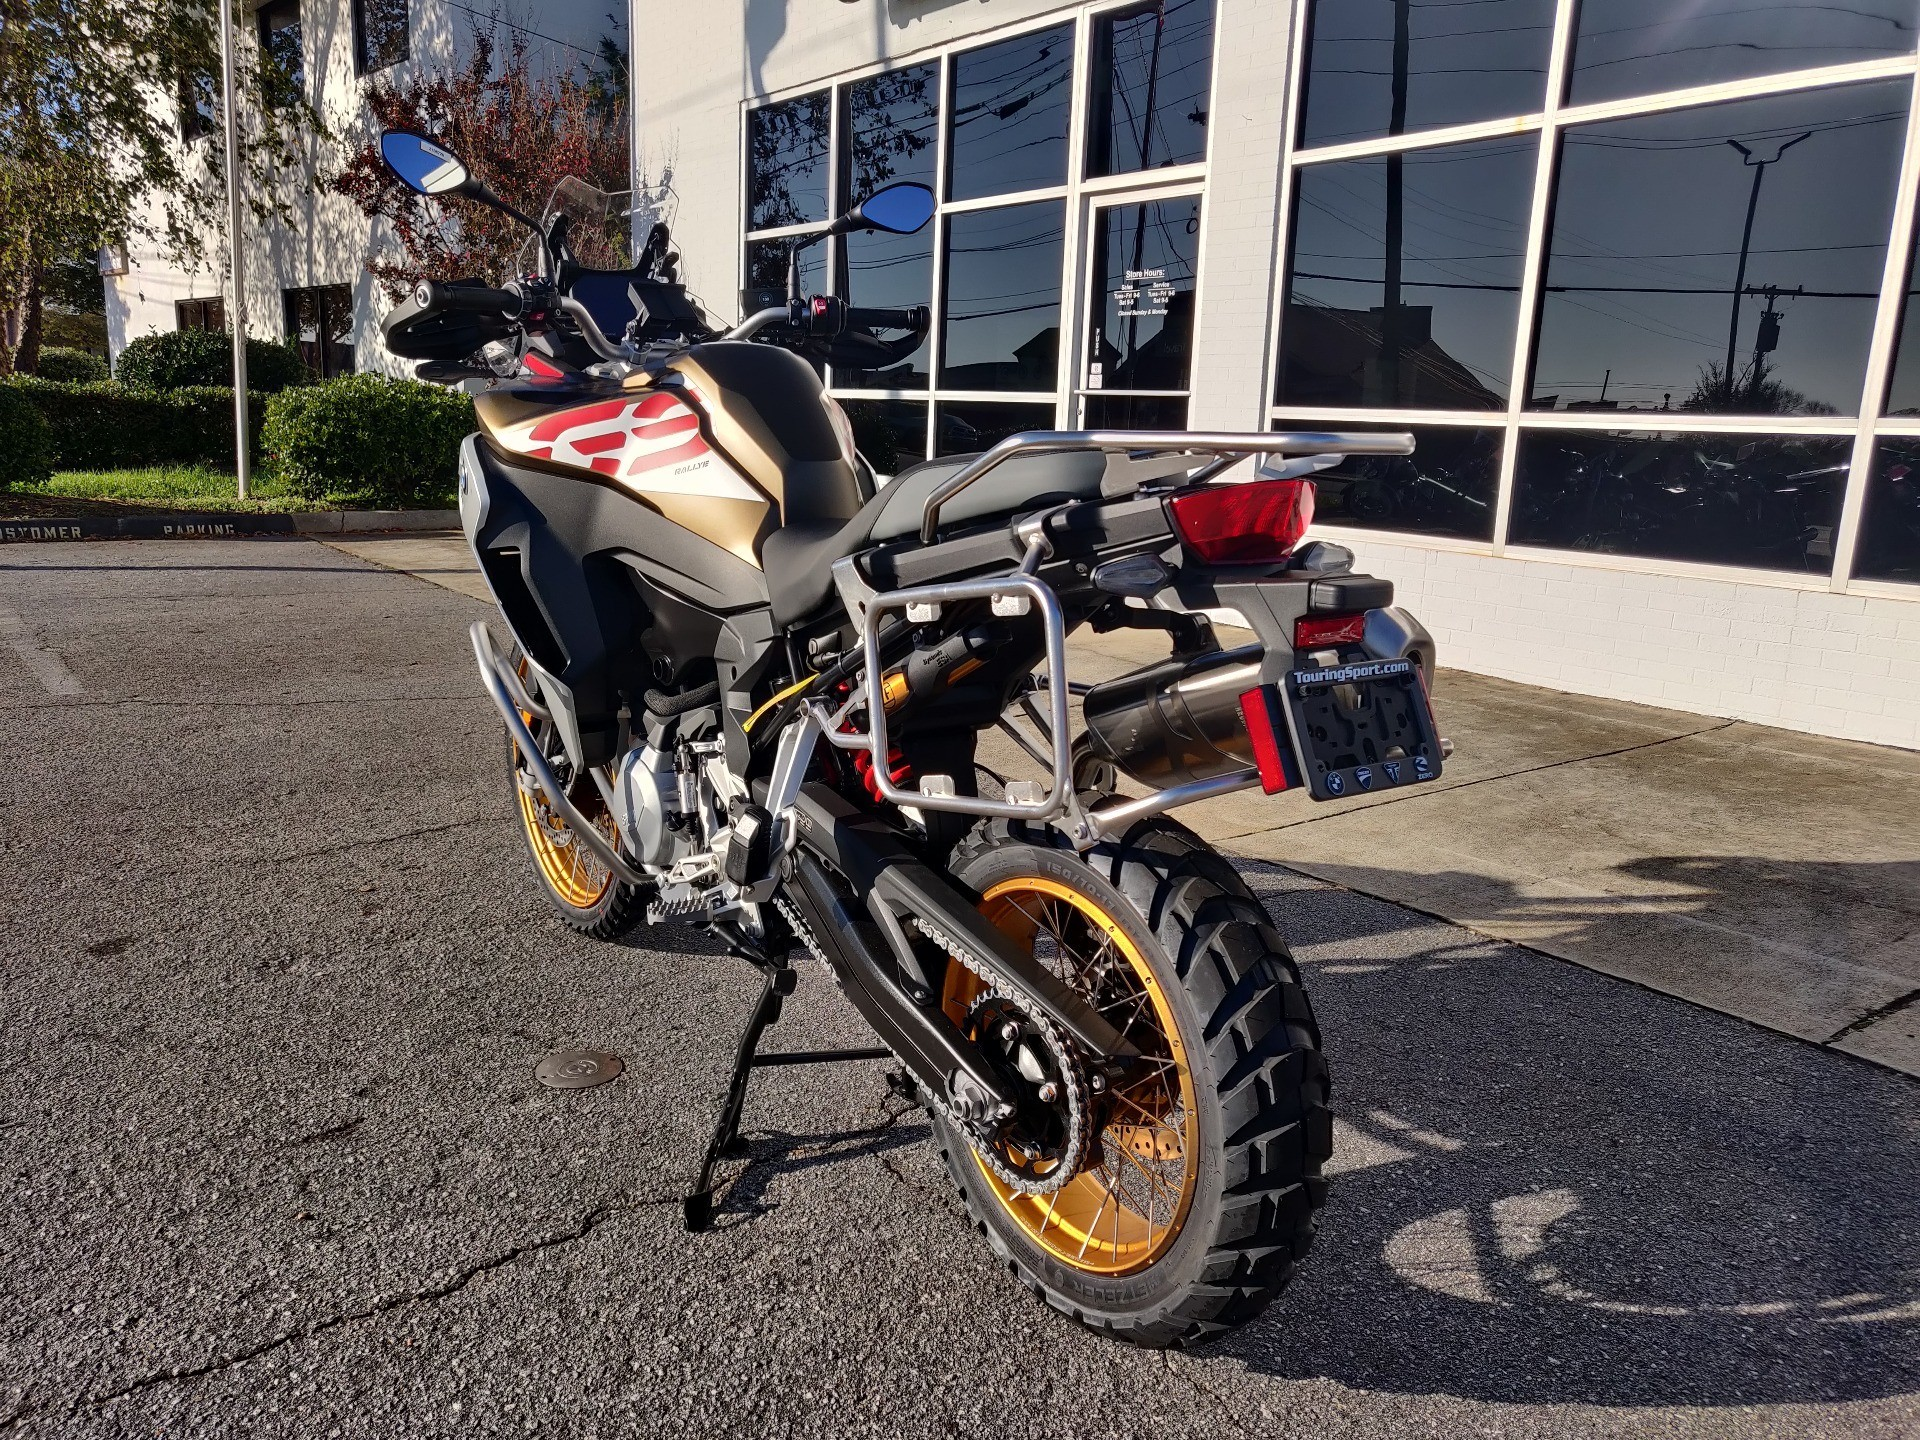 2021 BMW F850 GS ADVENTURE in Greenville, South Carolina - Photo 7